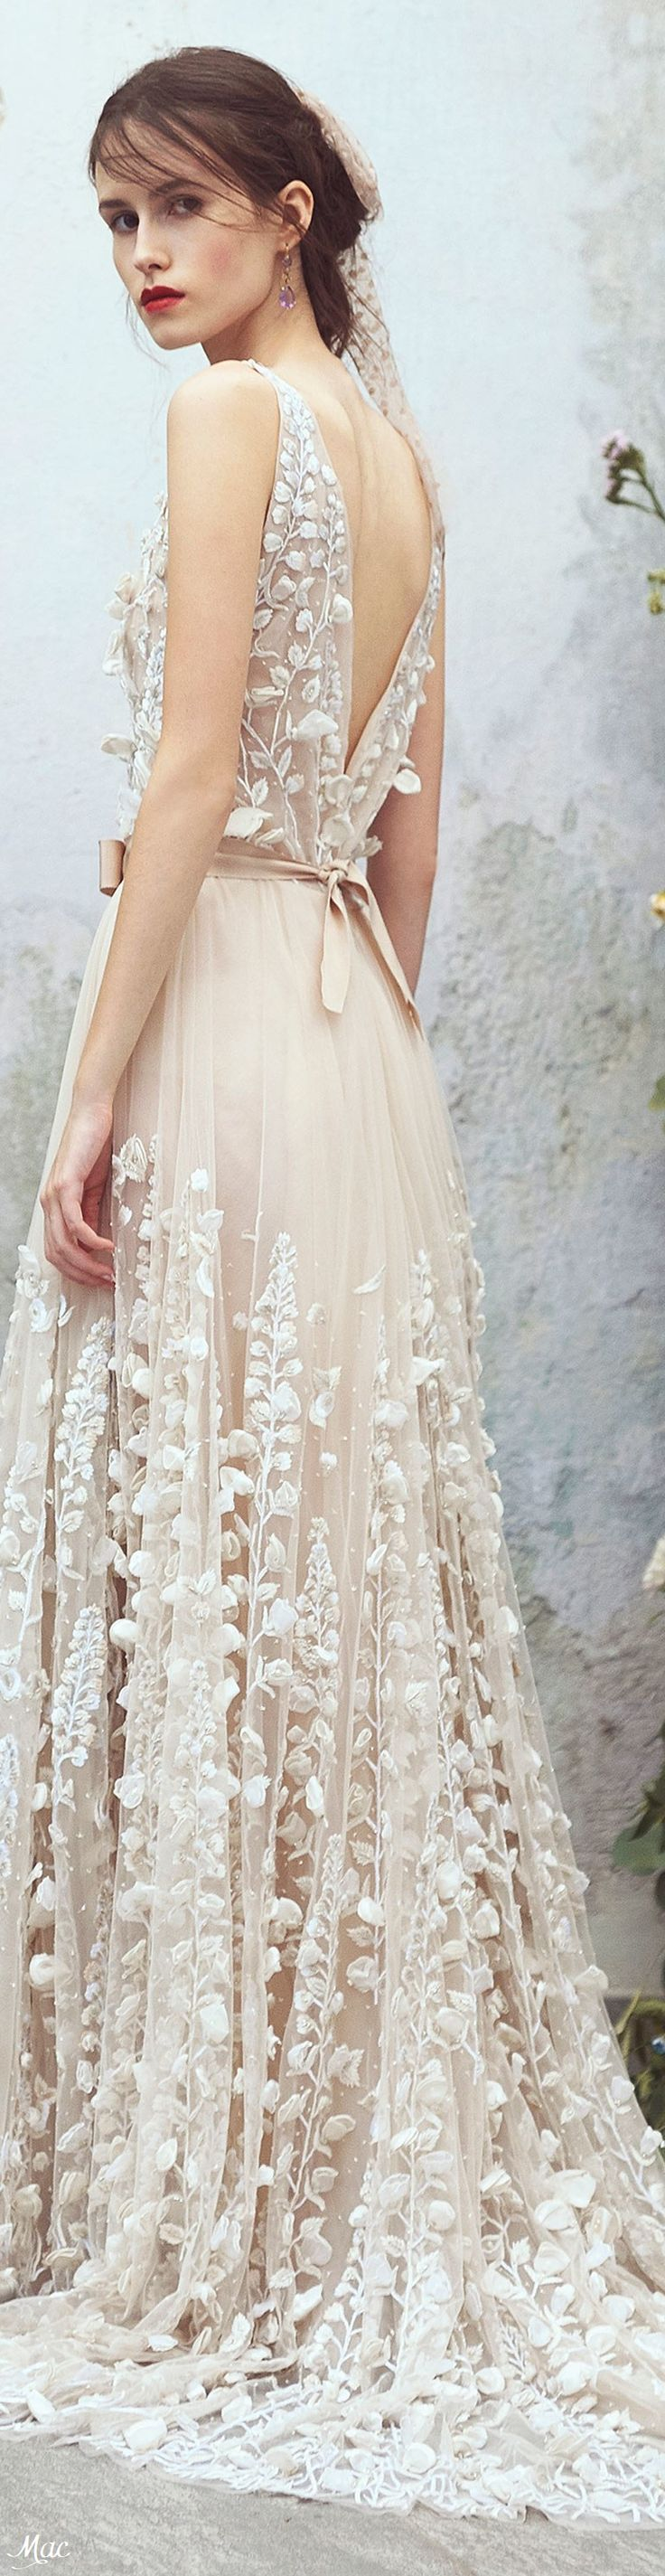 Find More at => http://feedproxy.google.com/~r/amazingoutfits/~3/qIM6MNEad6c/AmazingOutfits.page